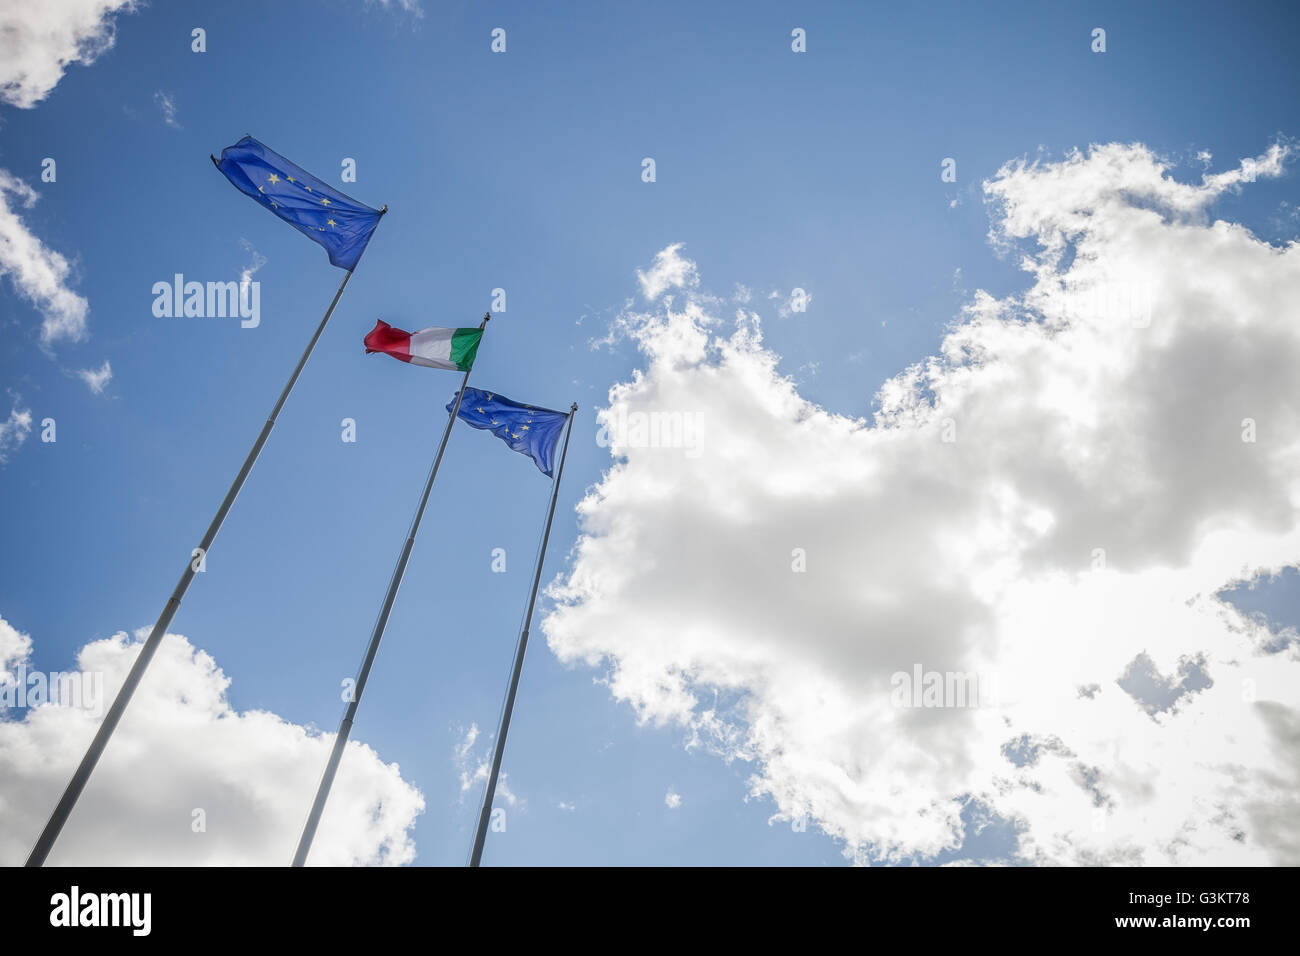 Low angle view of flags flapping in wind on flagpole, Italy - Stock Image